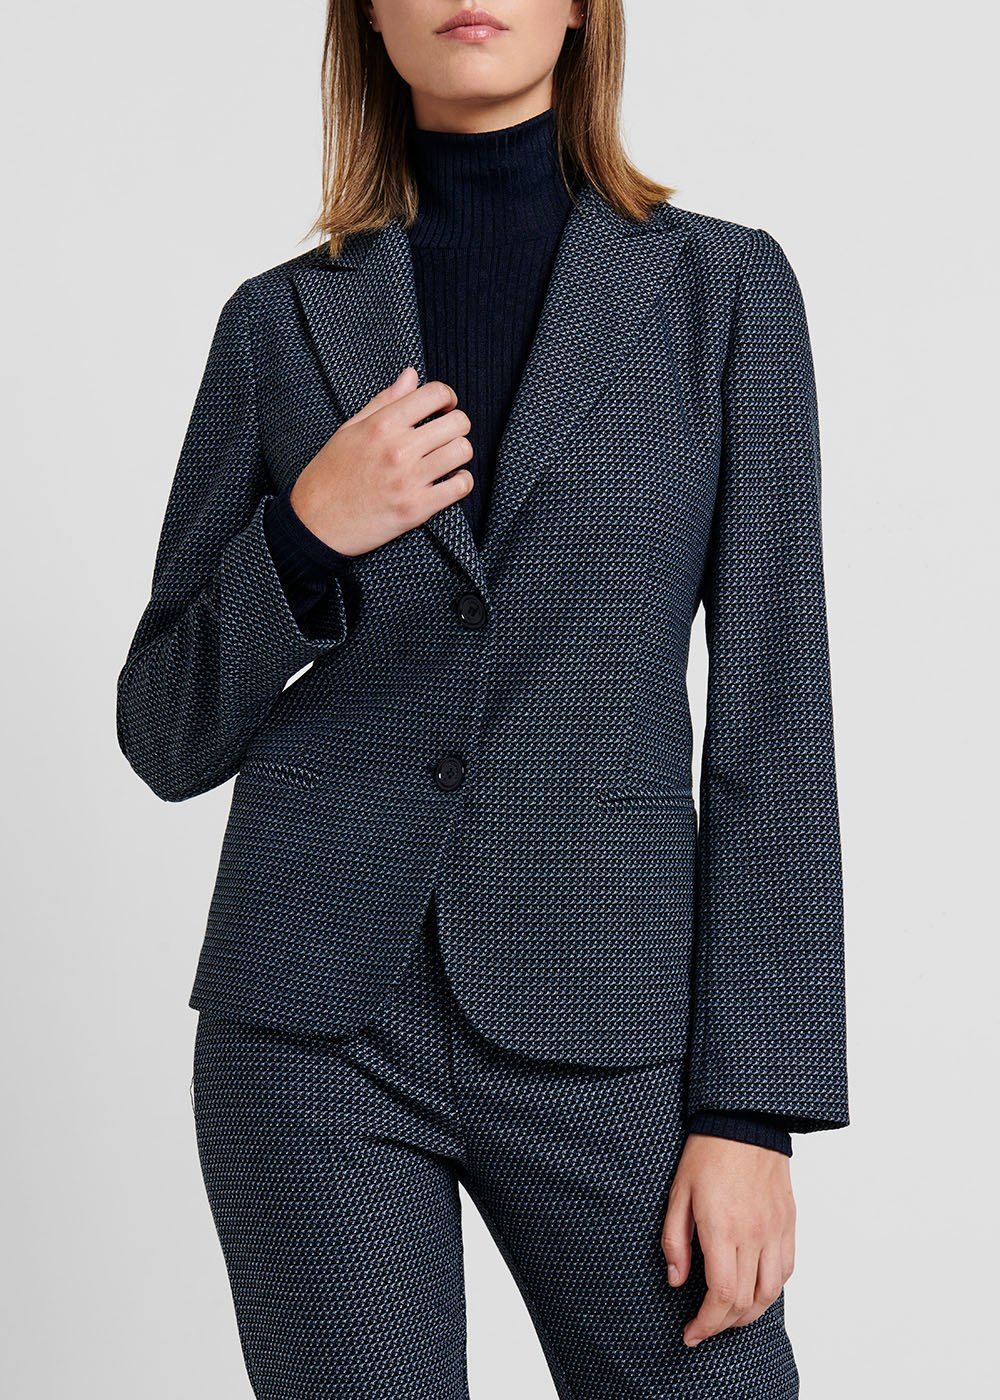 Micro-patterned jacquard jacket - Blue / Black Fantasia - Woman